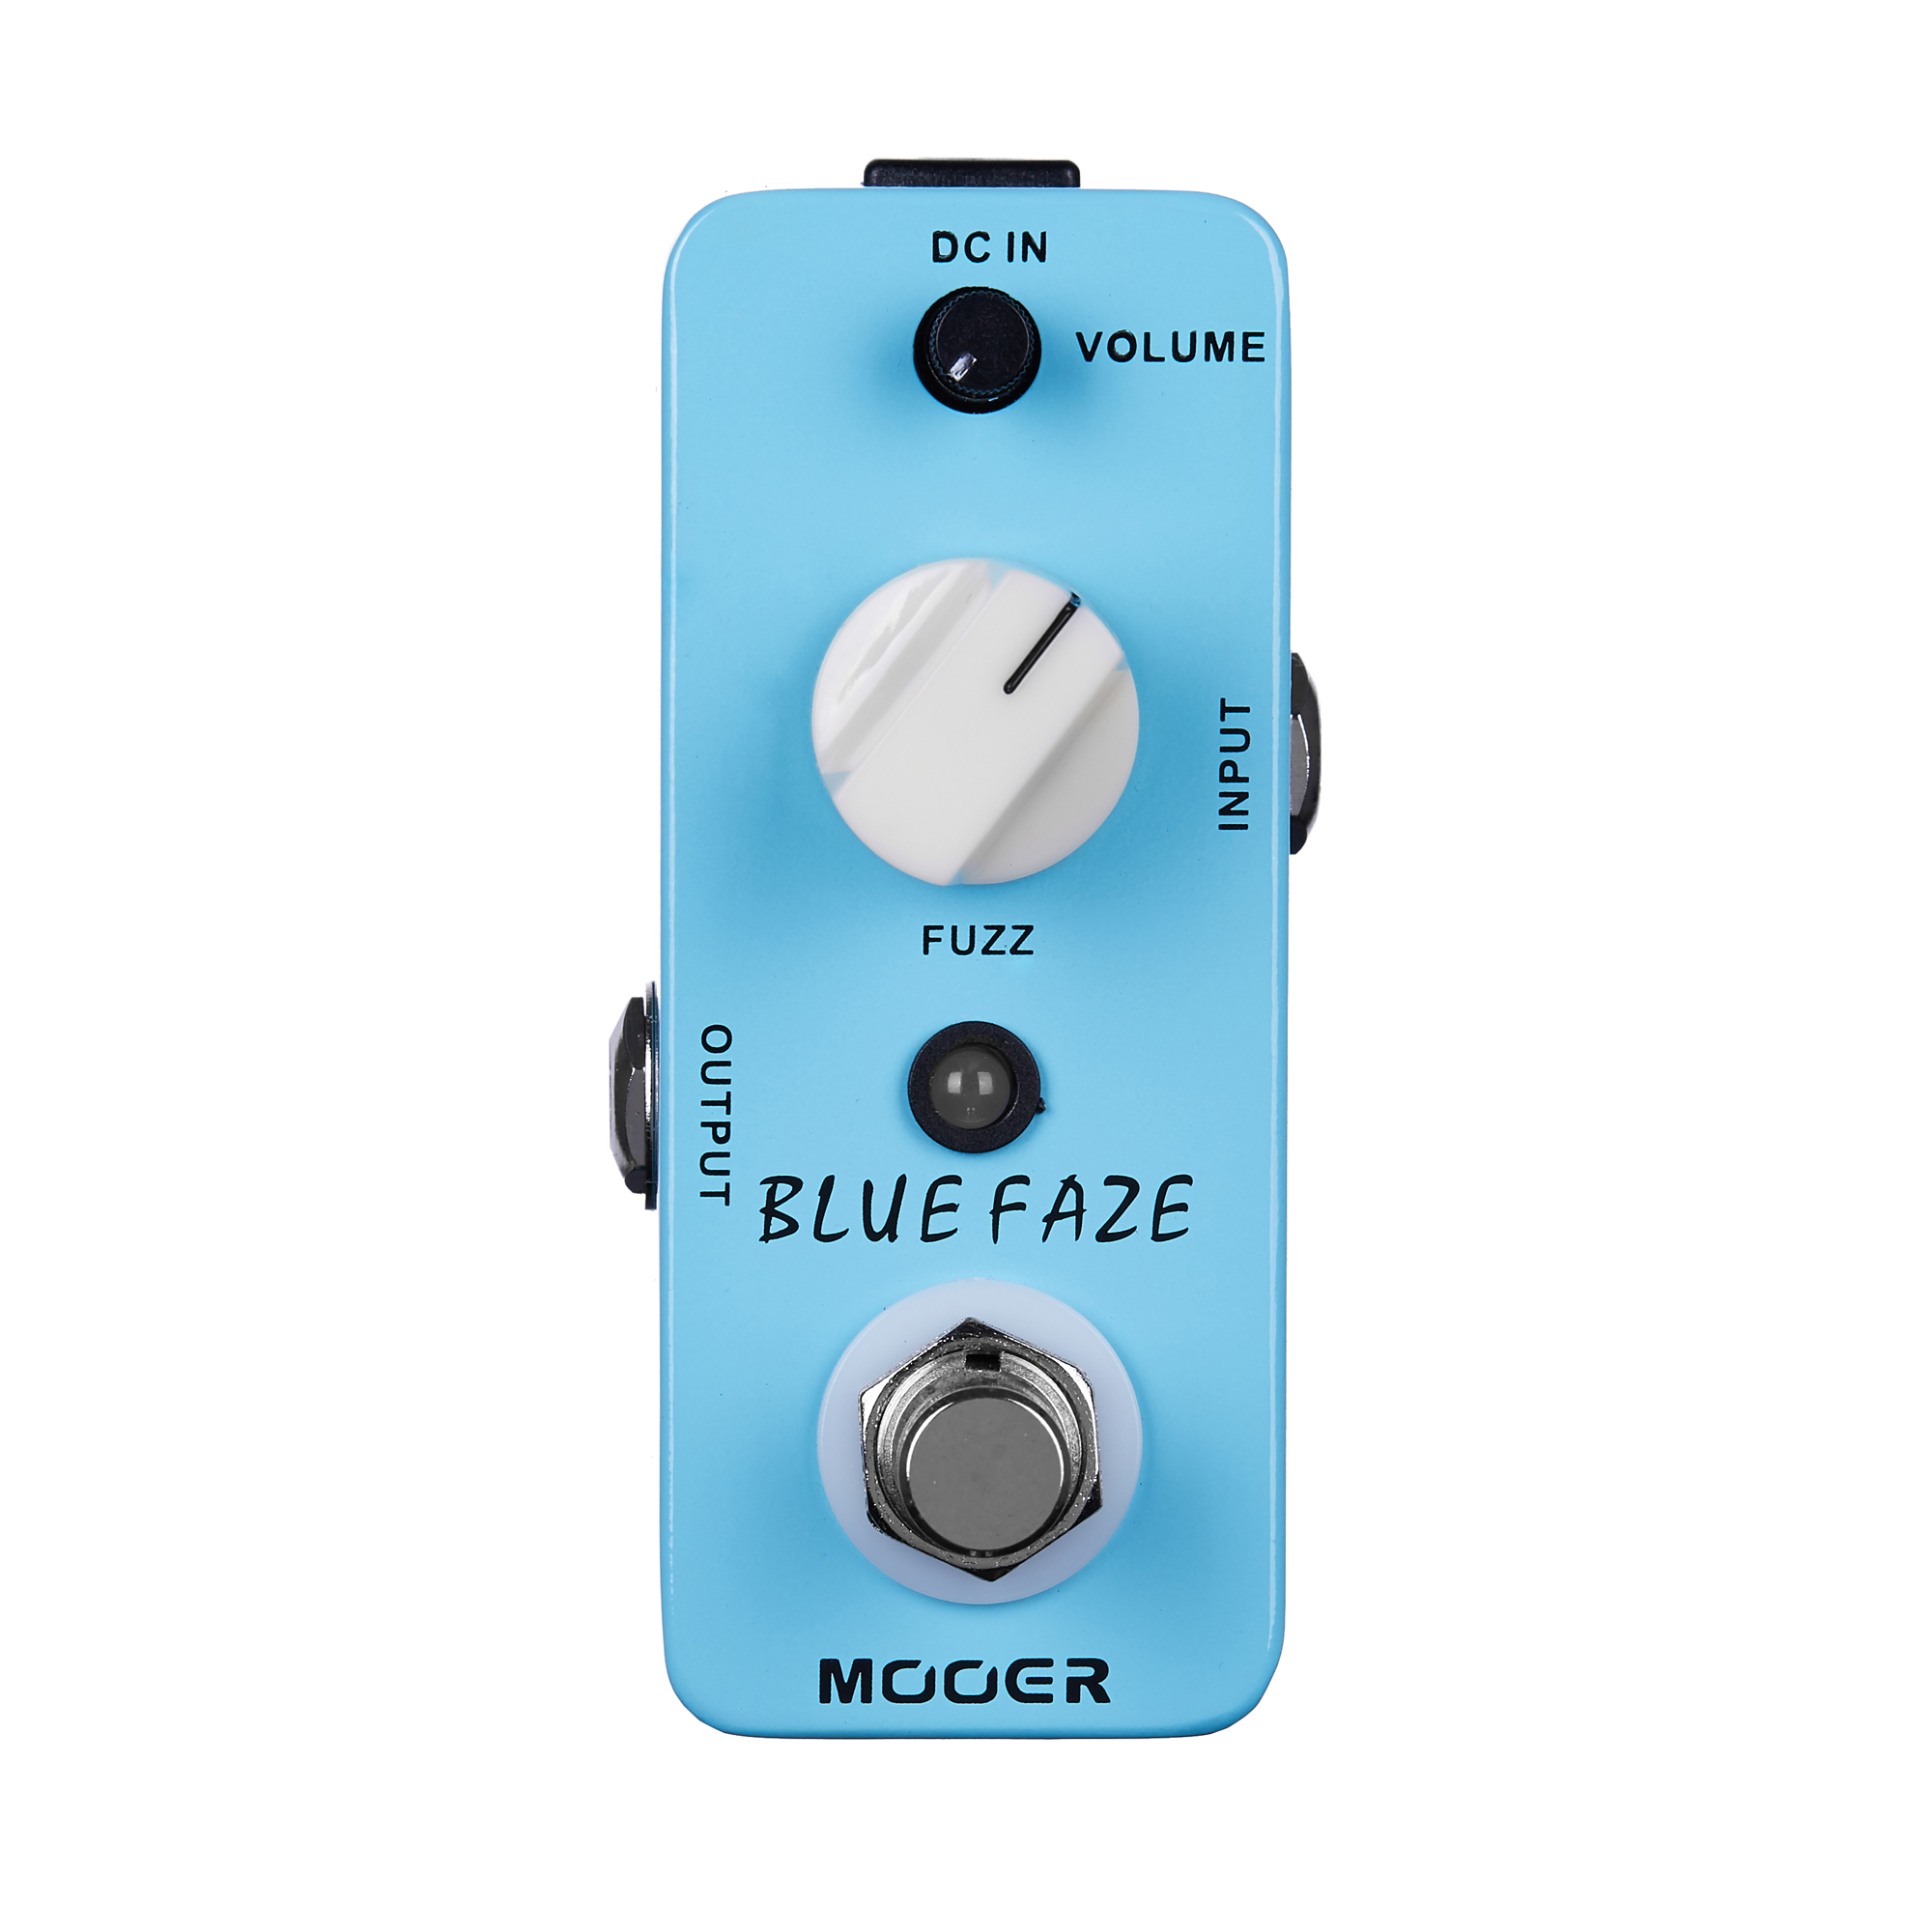 Mooer Blue Faze Fuzz Pedal Electric Guitar Effect Pedal True Bypass MFZ1 mooer grey faze fuzz guitar effect pedal electric guitar effects true bypass with free connector and footswitch topper